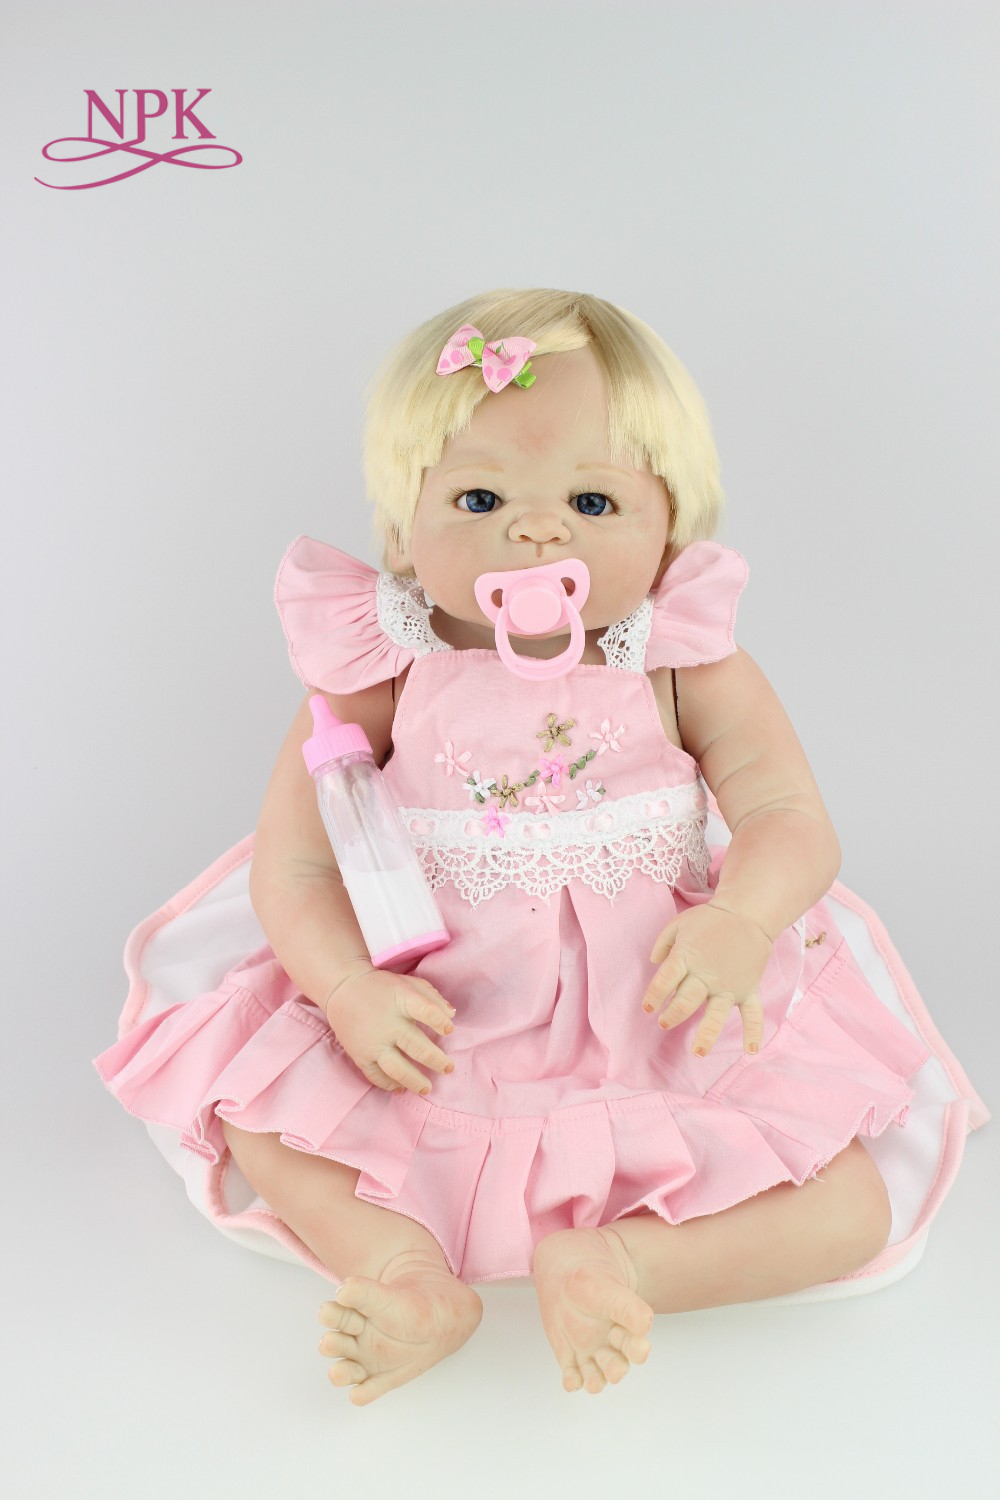 NPK free shipping hotsale reborn baby doll girl beautiful so truly real collection finished doll as picture